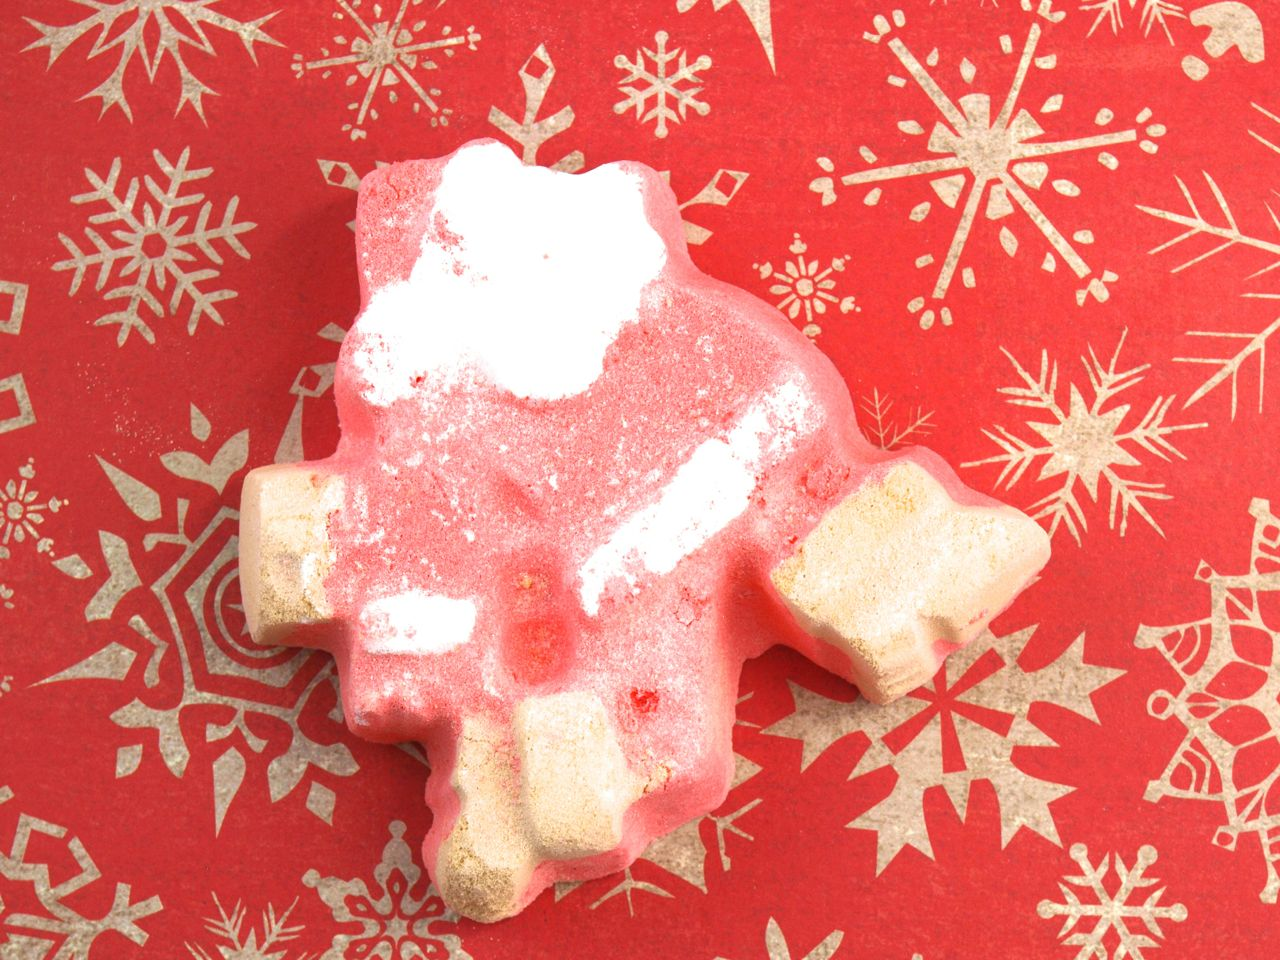 Lush Christmas 2014 Collection Dashing Santa Bath Bomb